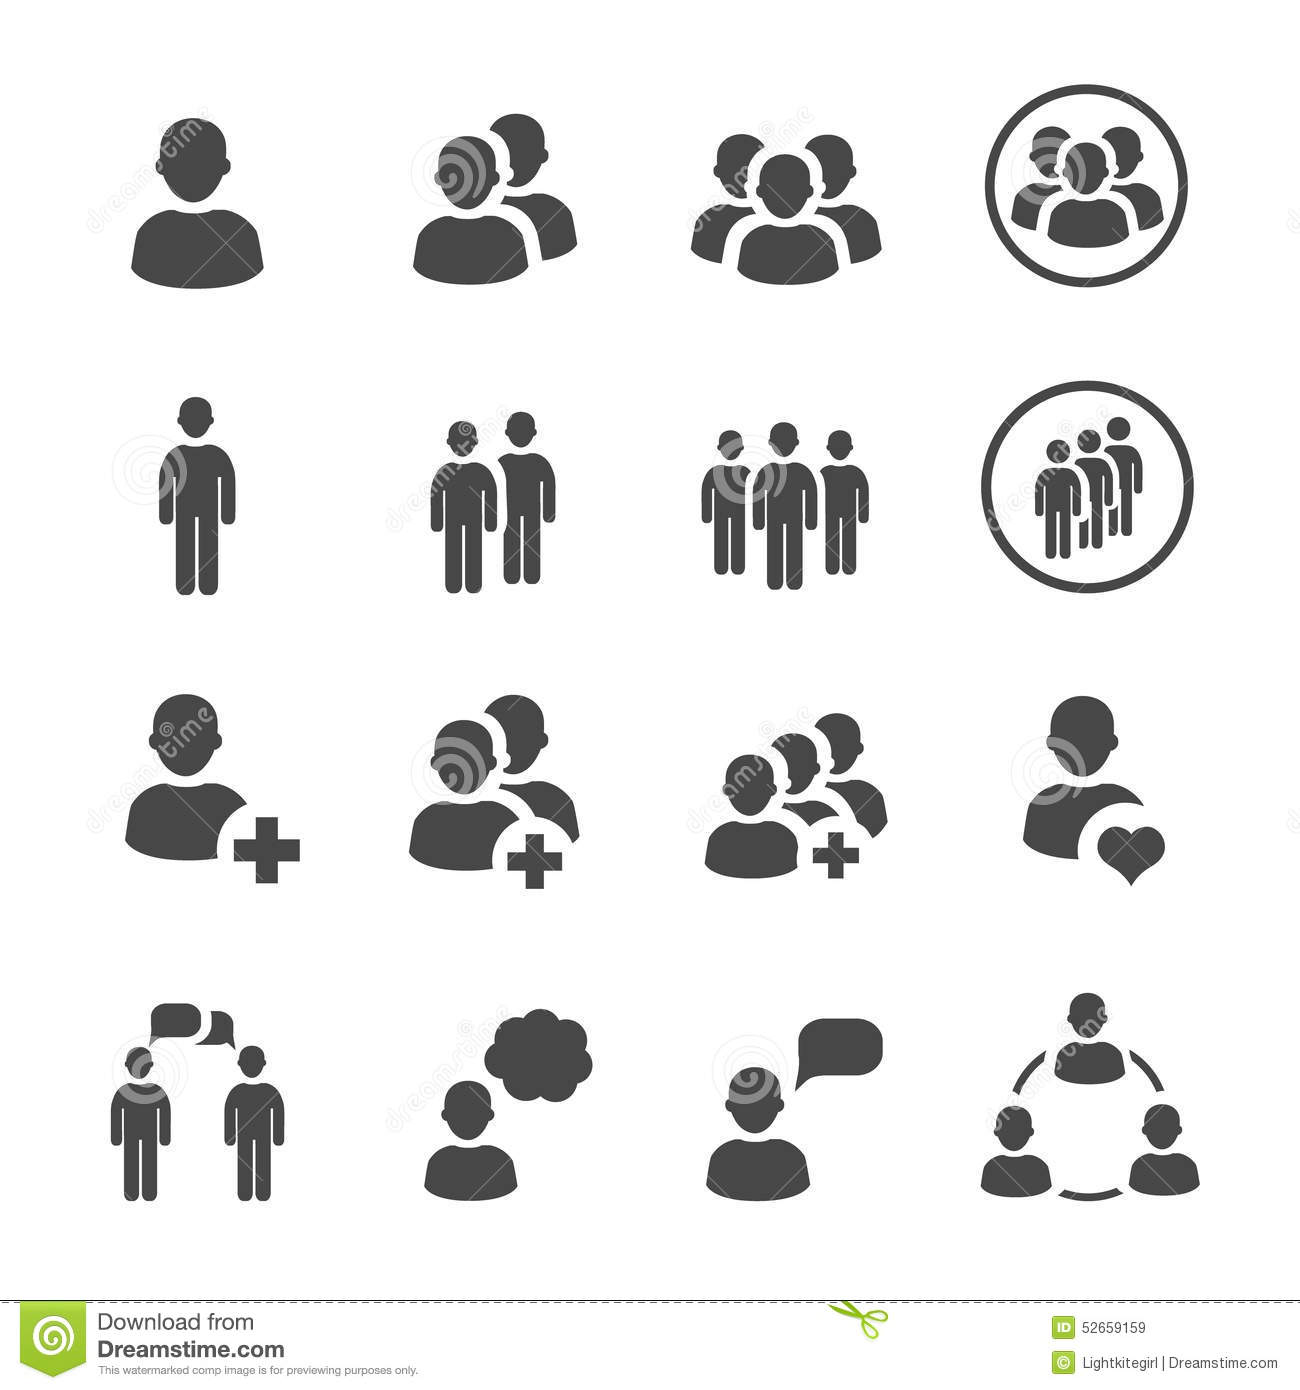 People icon vector set